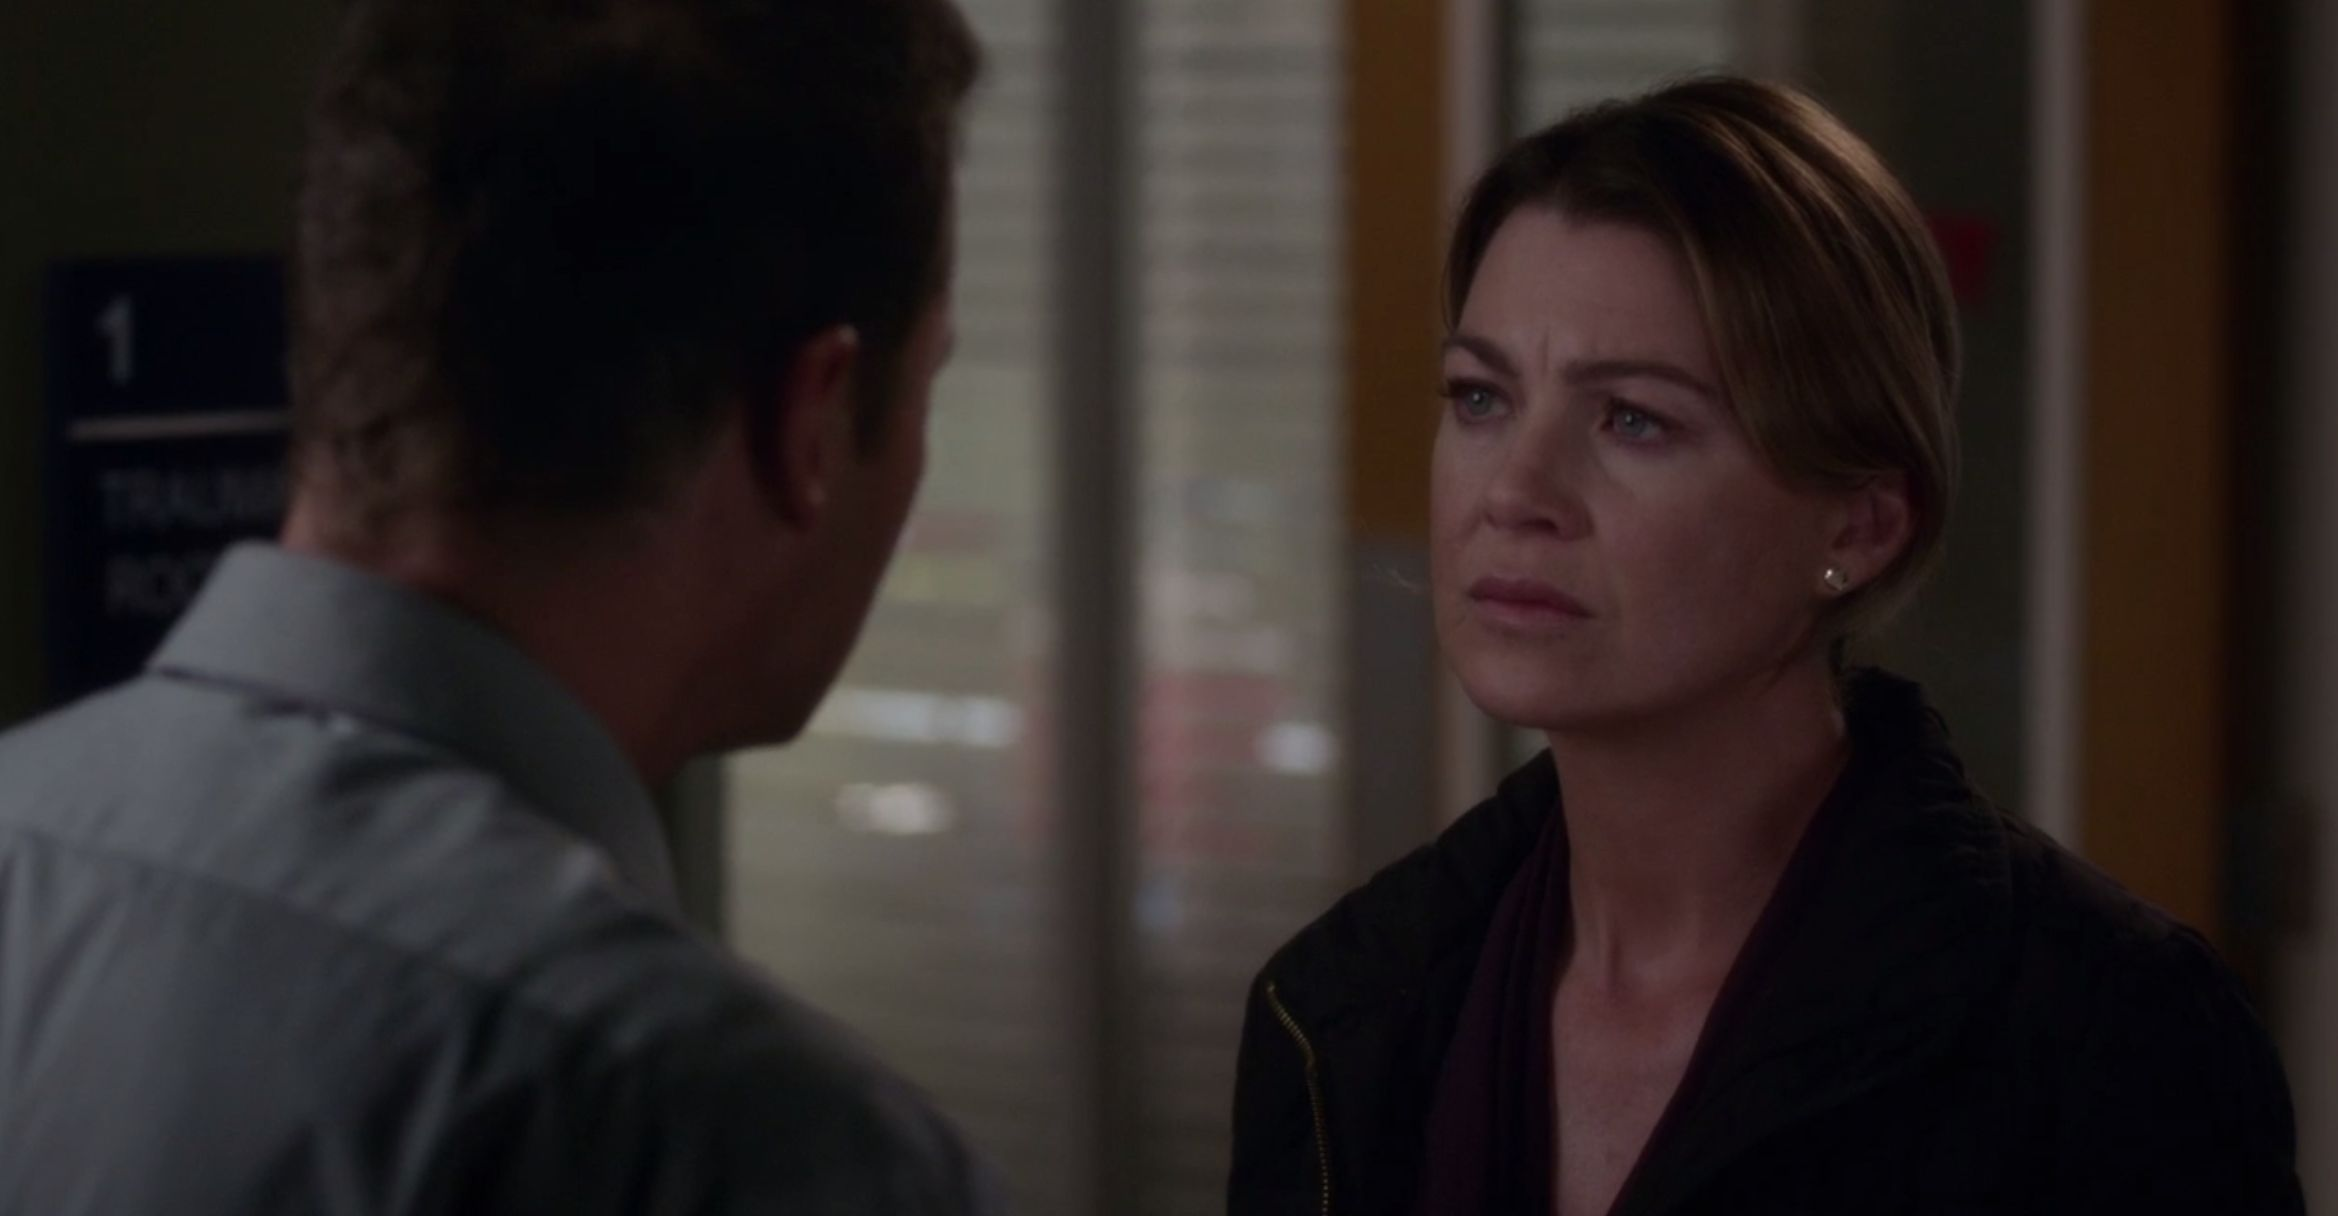 Greys anatomy s03e17 watch online - What do the two faces in drama mean